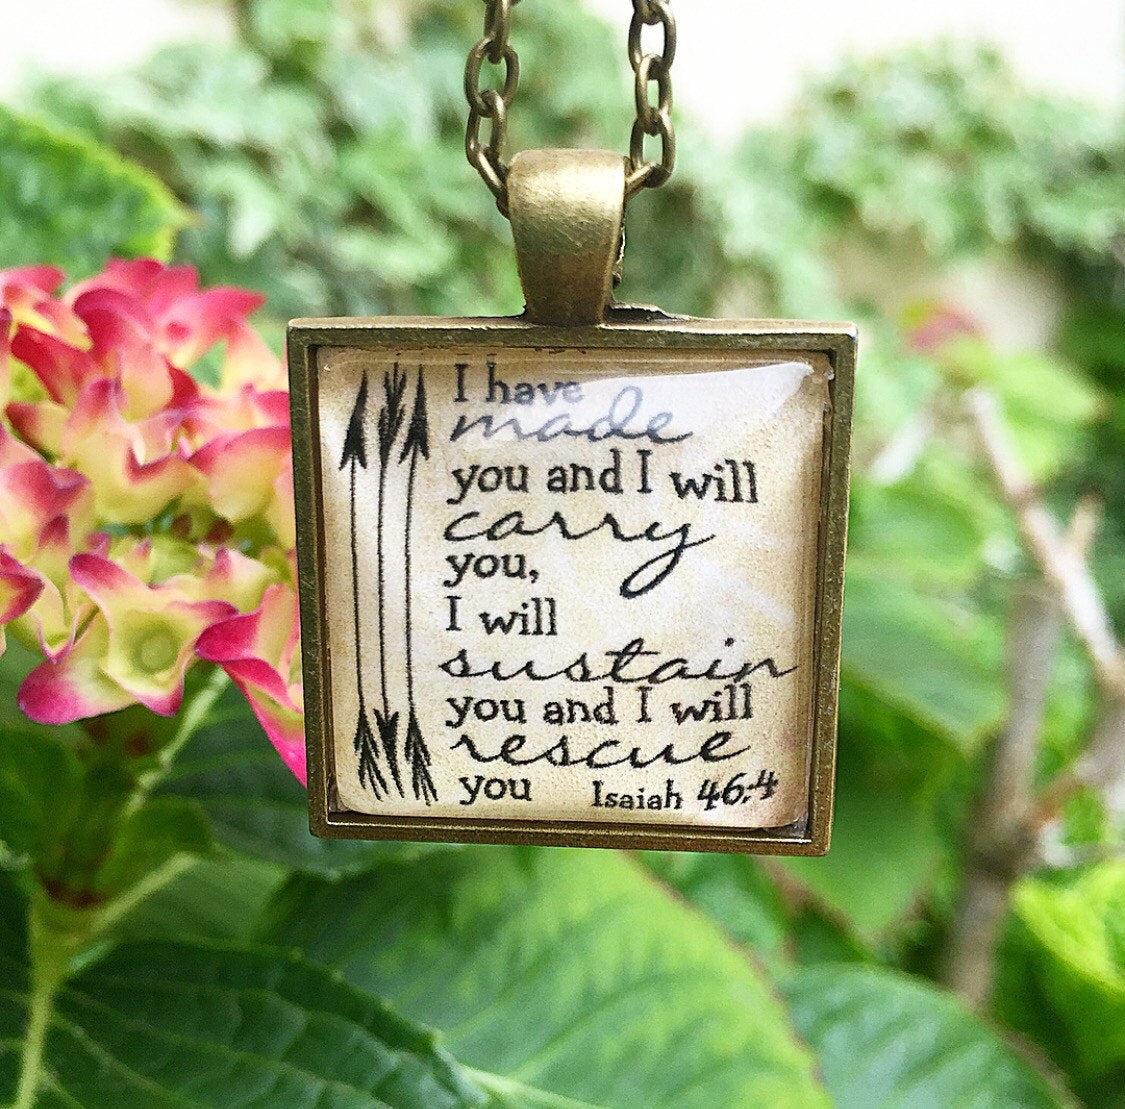 Bible Verse pendant Necklace Isaiah 46:4 - Redeemed Jewelry